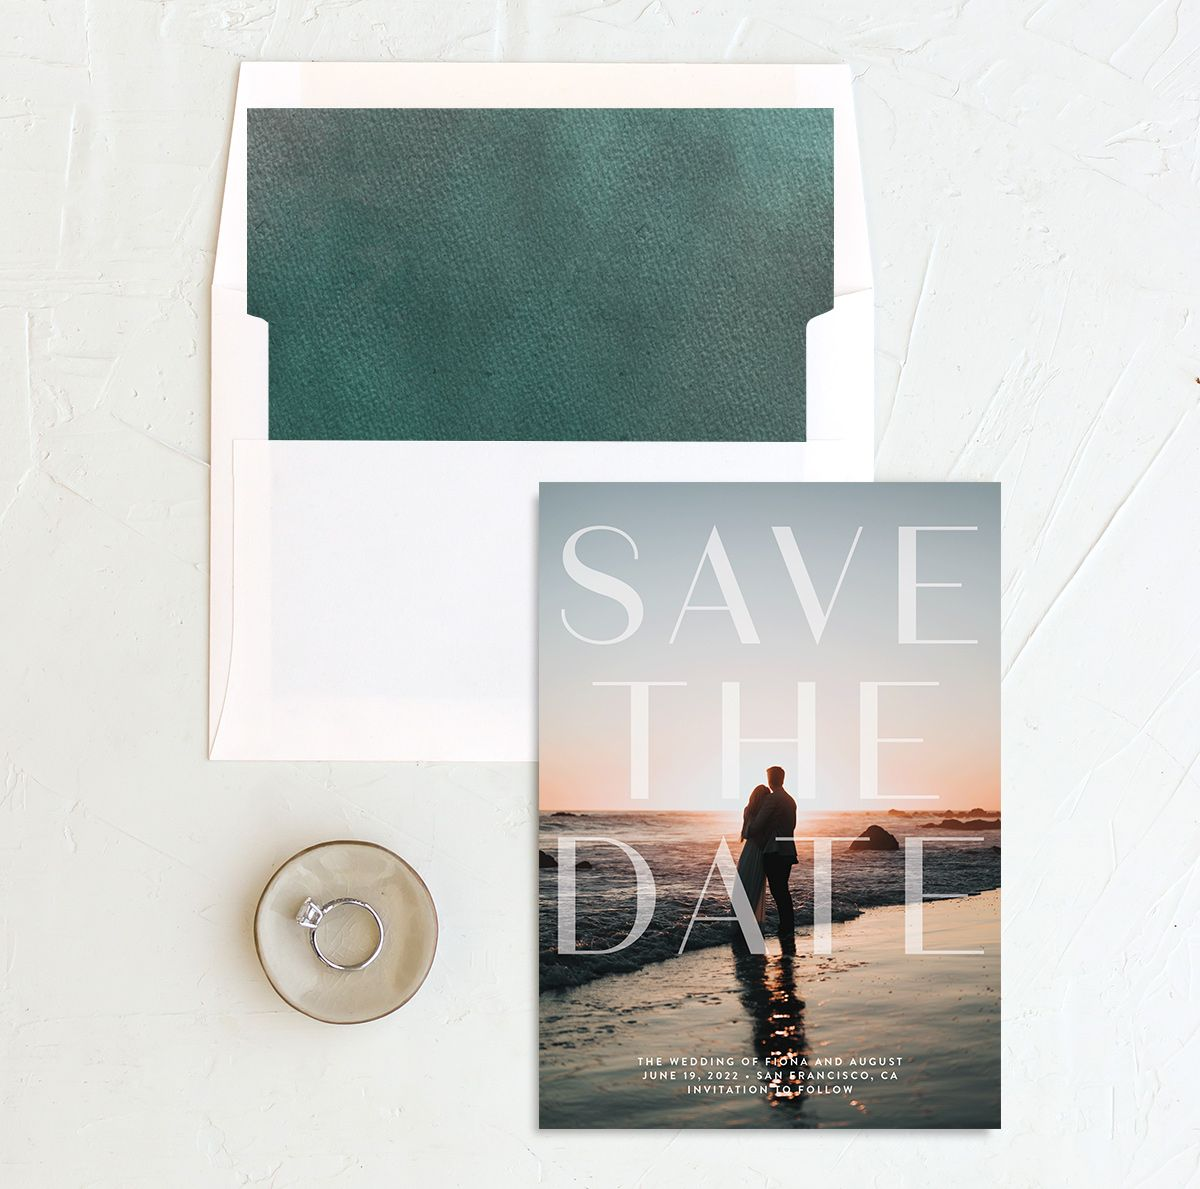 Awash save the date with liner green